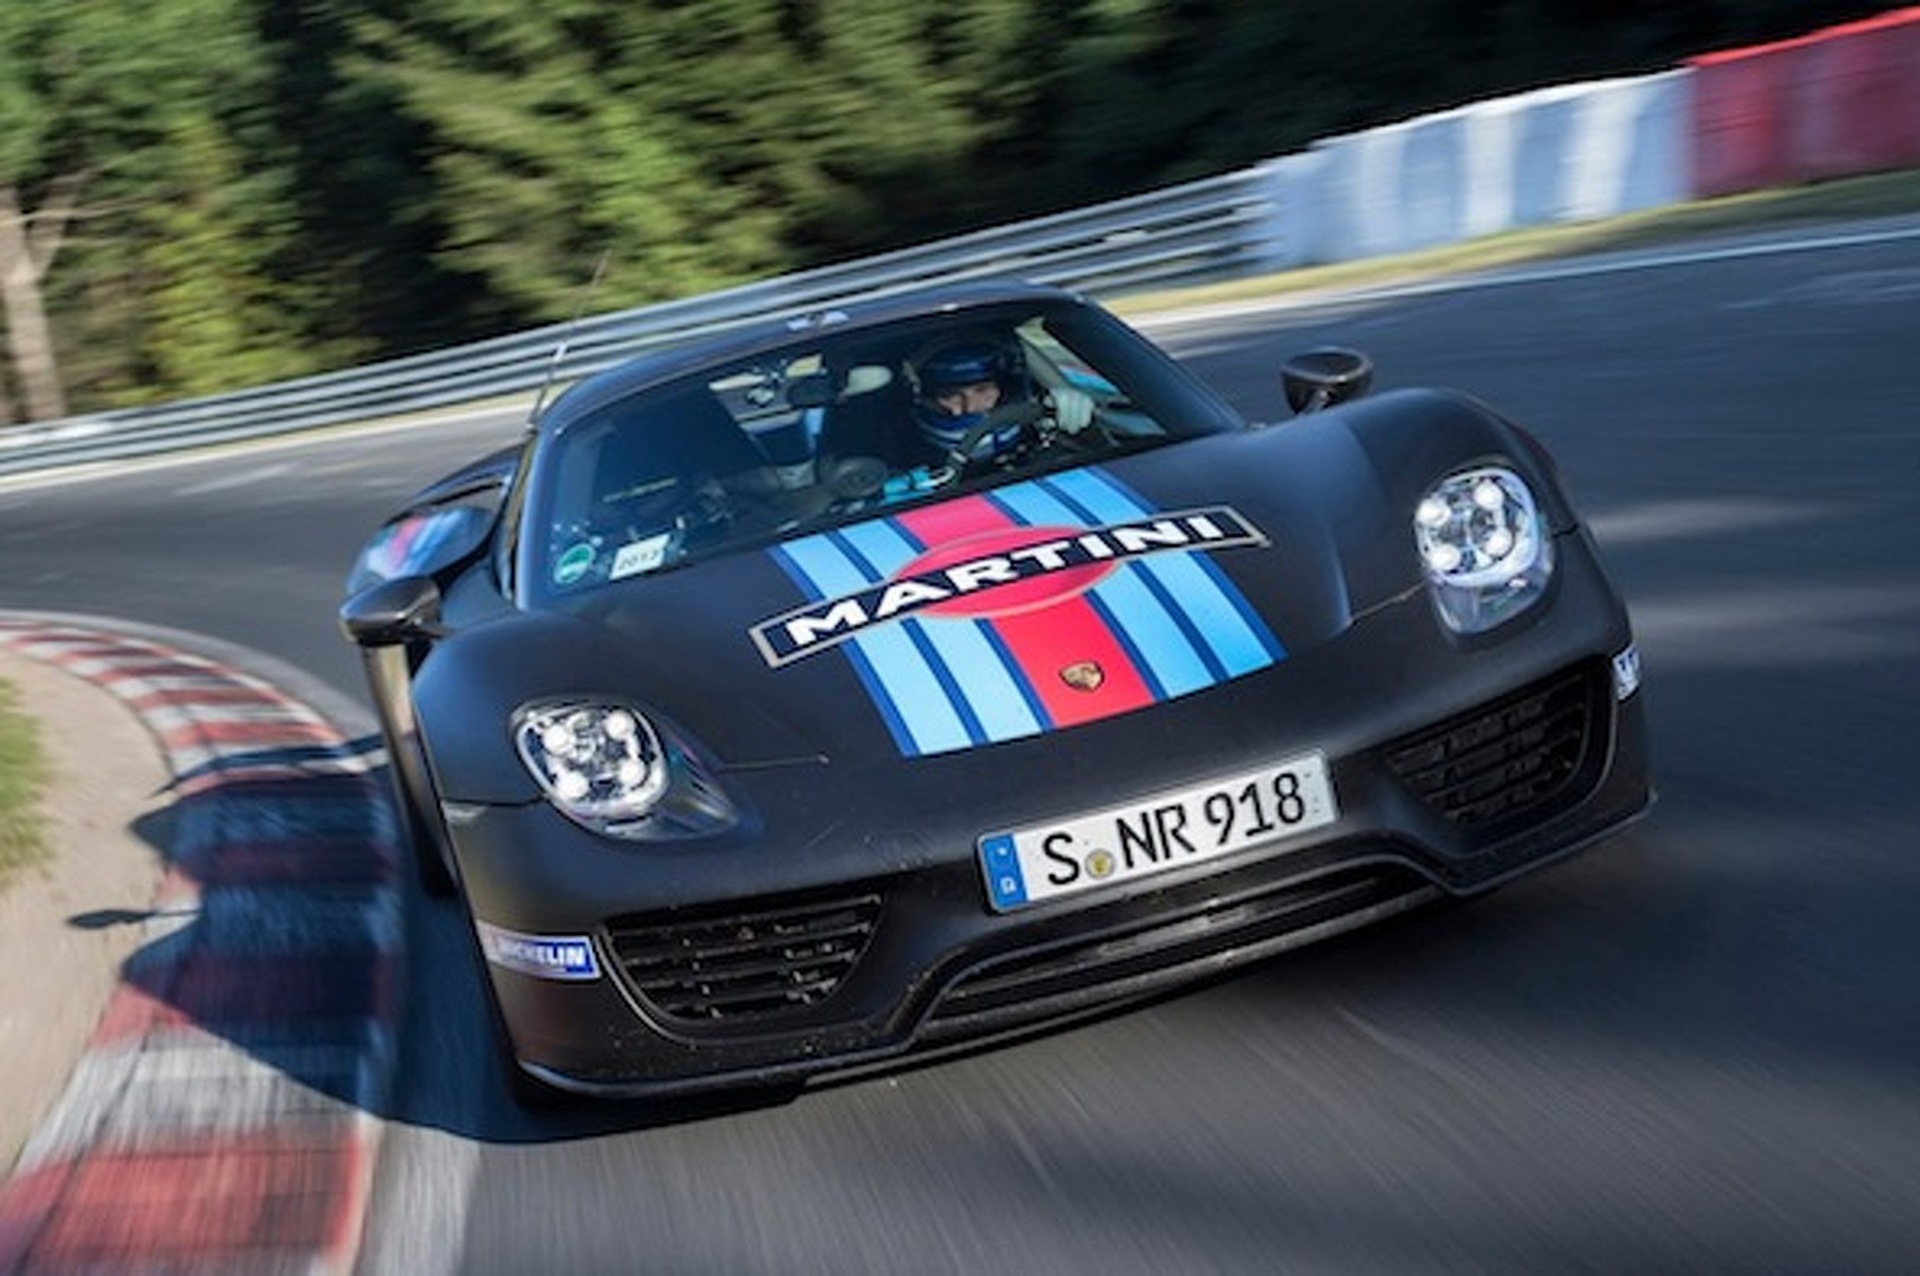 Porsche 918 Spyder: Fastest Production Car Around Nurburgring [w/video]